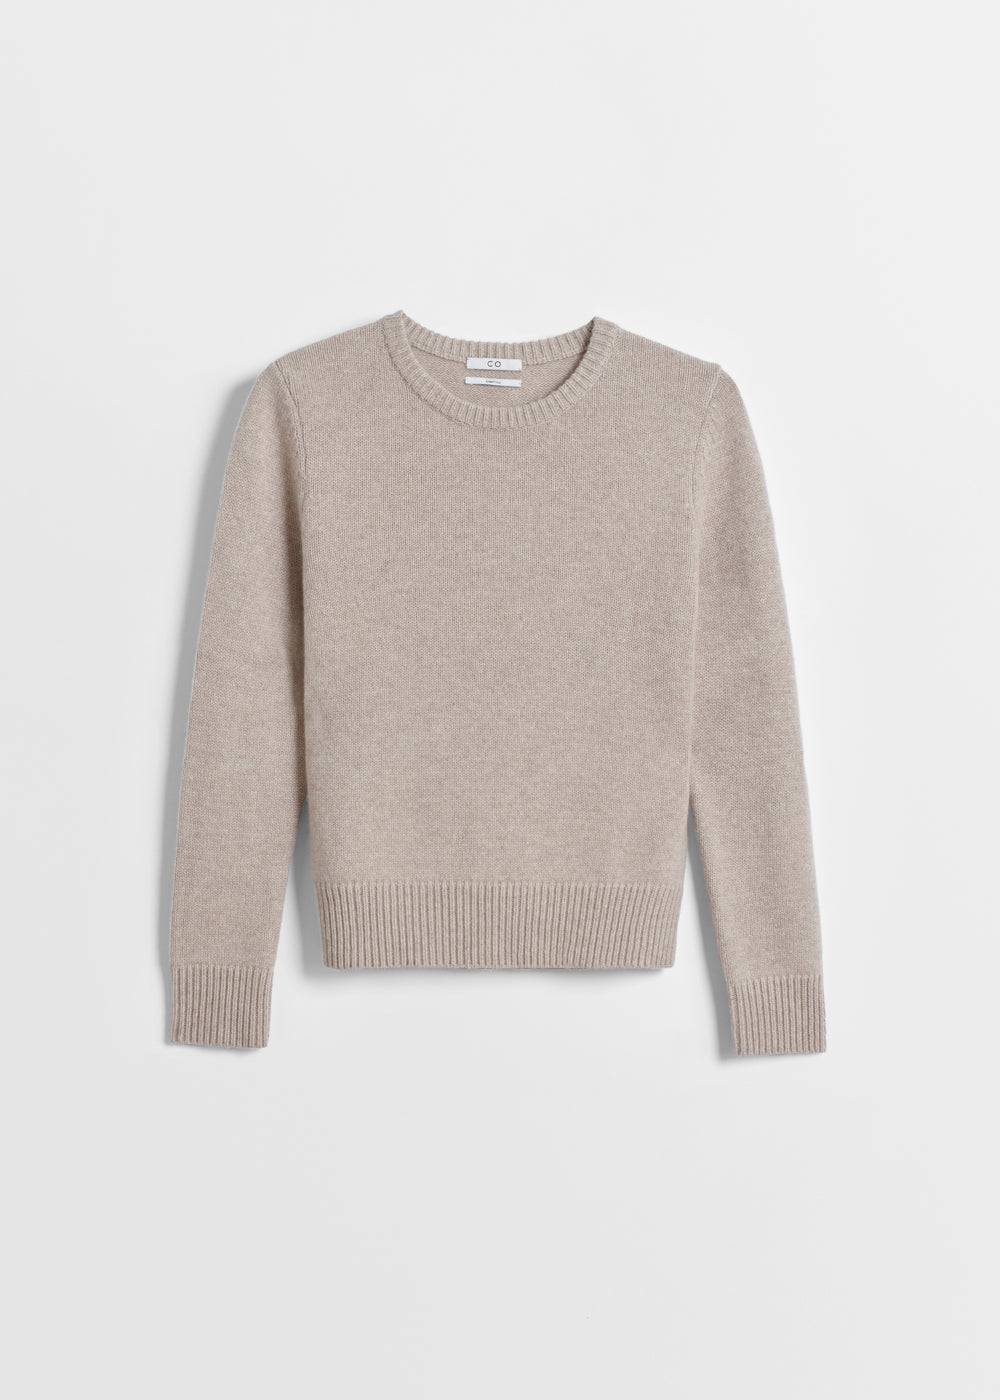 Classic Crew Neck in Cashmere - Light Grey in Sand Melange by Co Collections